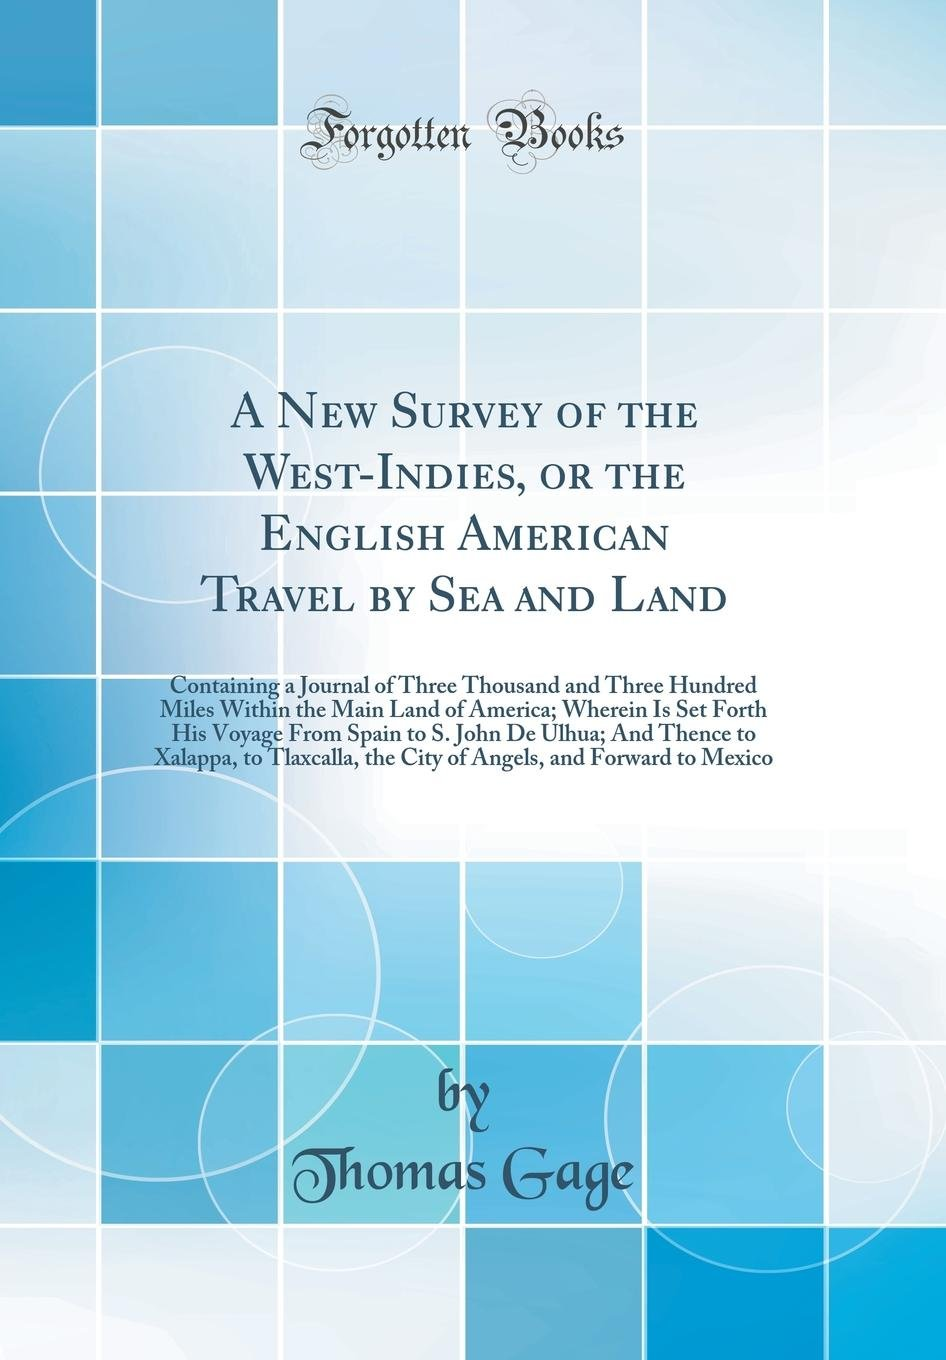 Download A New Survey of the West-Indies, or the English American Travel by Sea and Land: Containing a Journal of Three Thousand and Three Hundred Miles Within ... From Spain to S. John De Ulhua; And Thence to pdf